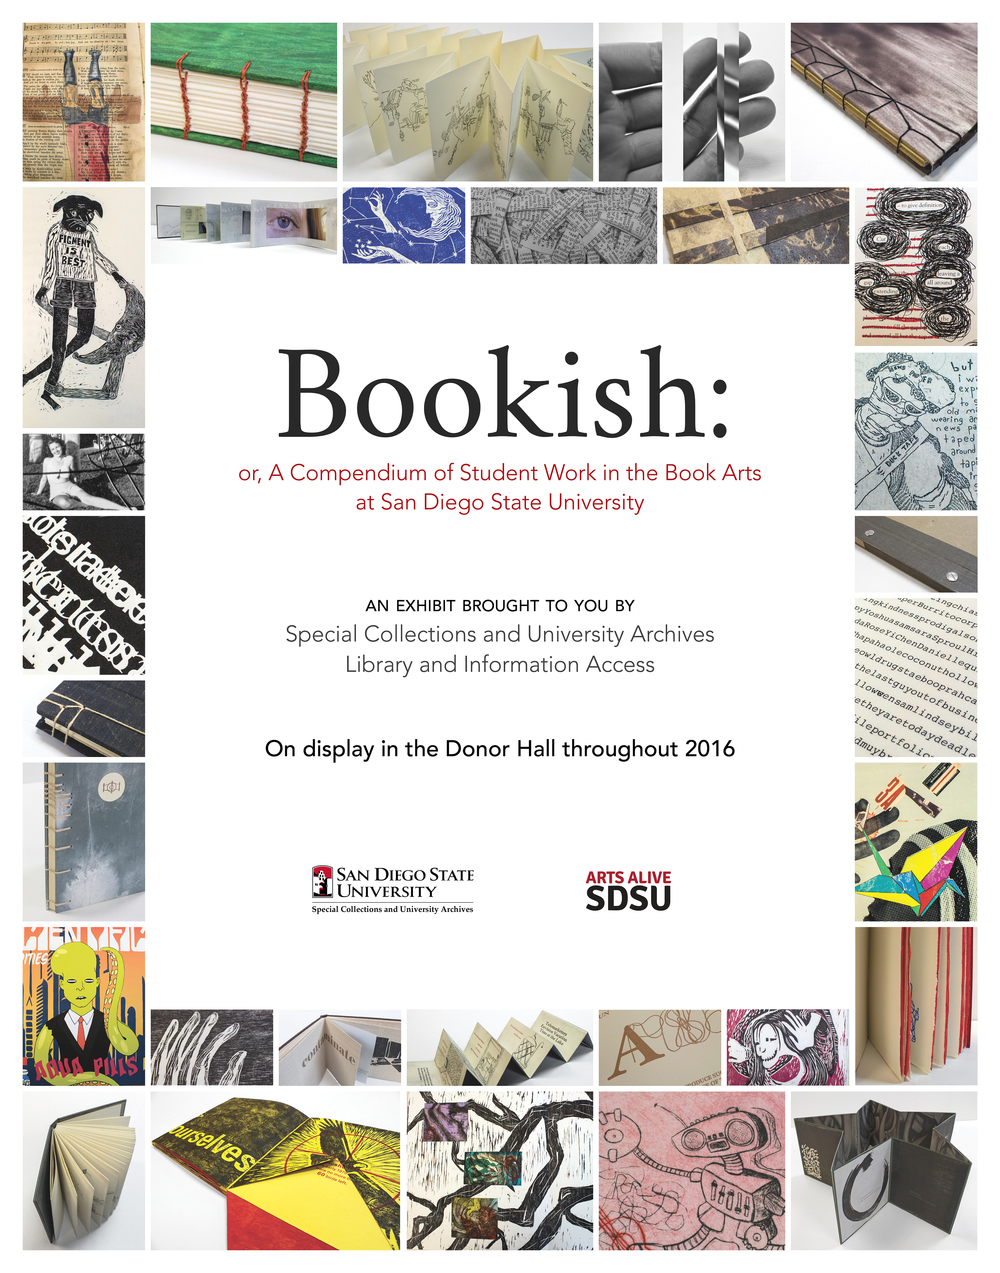 Bookish exhibit poster, 2016